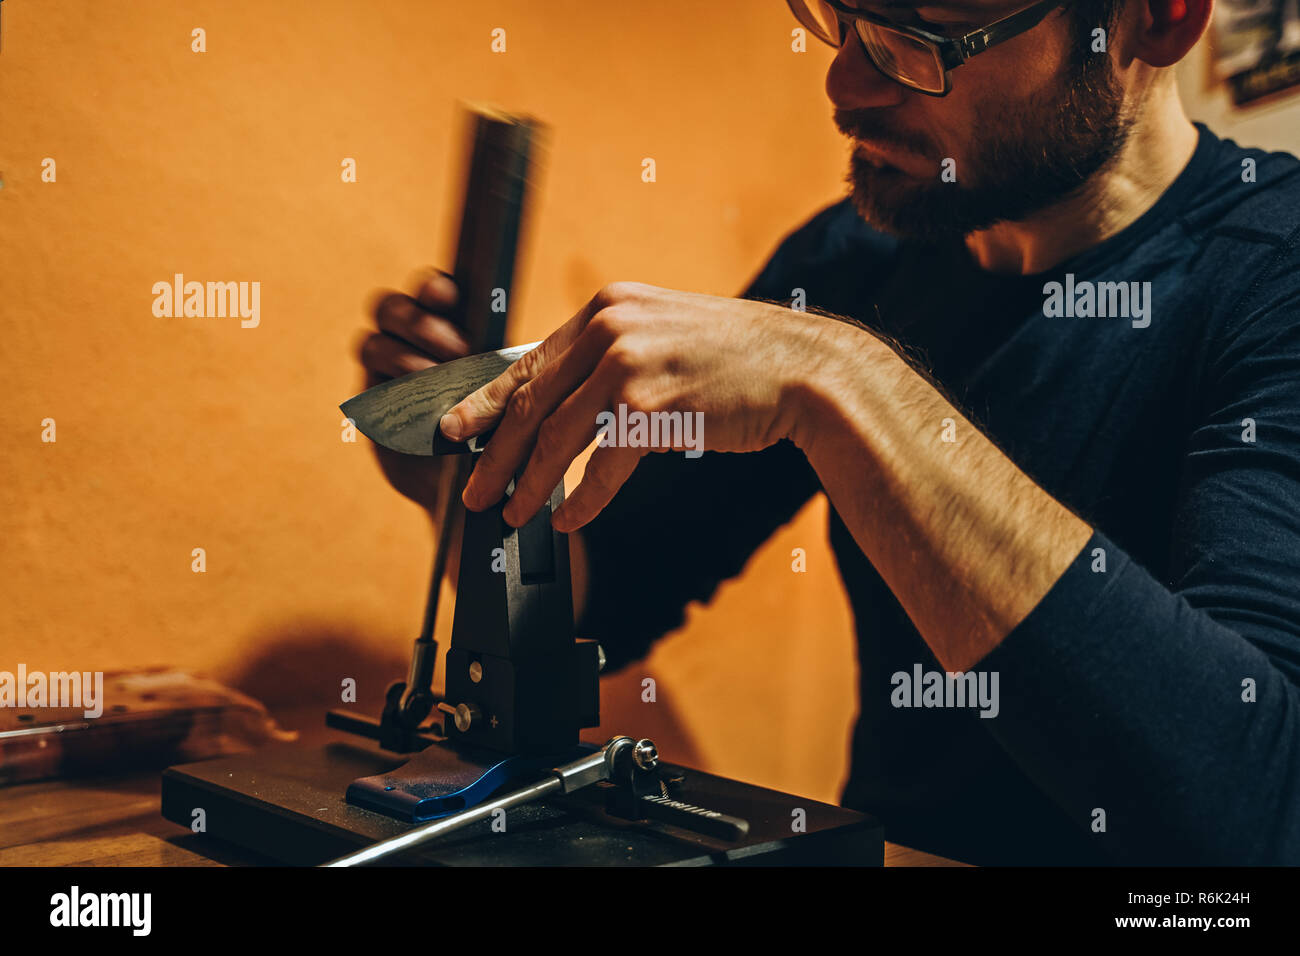 photo of caucasian man sharpening a japanese kitchen knife with a modern whetstone device - Stock Image